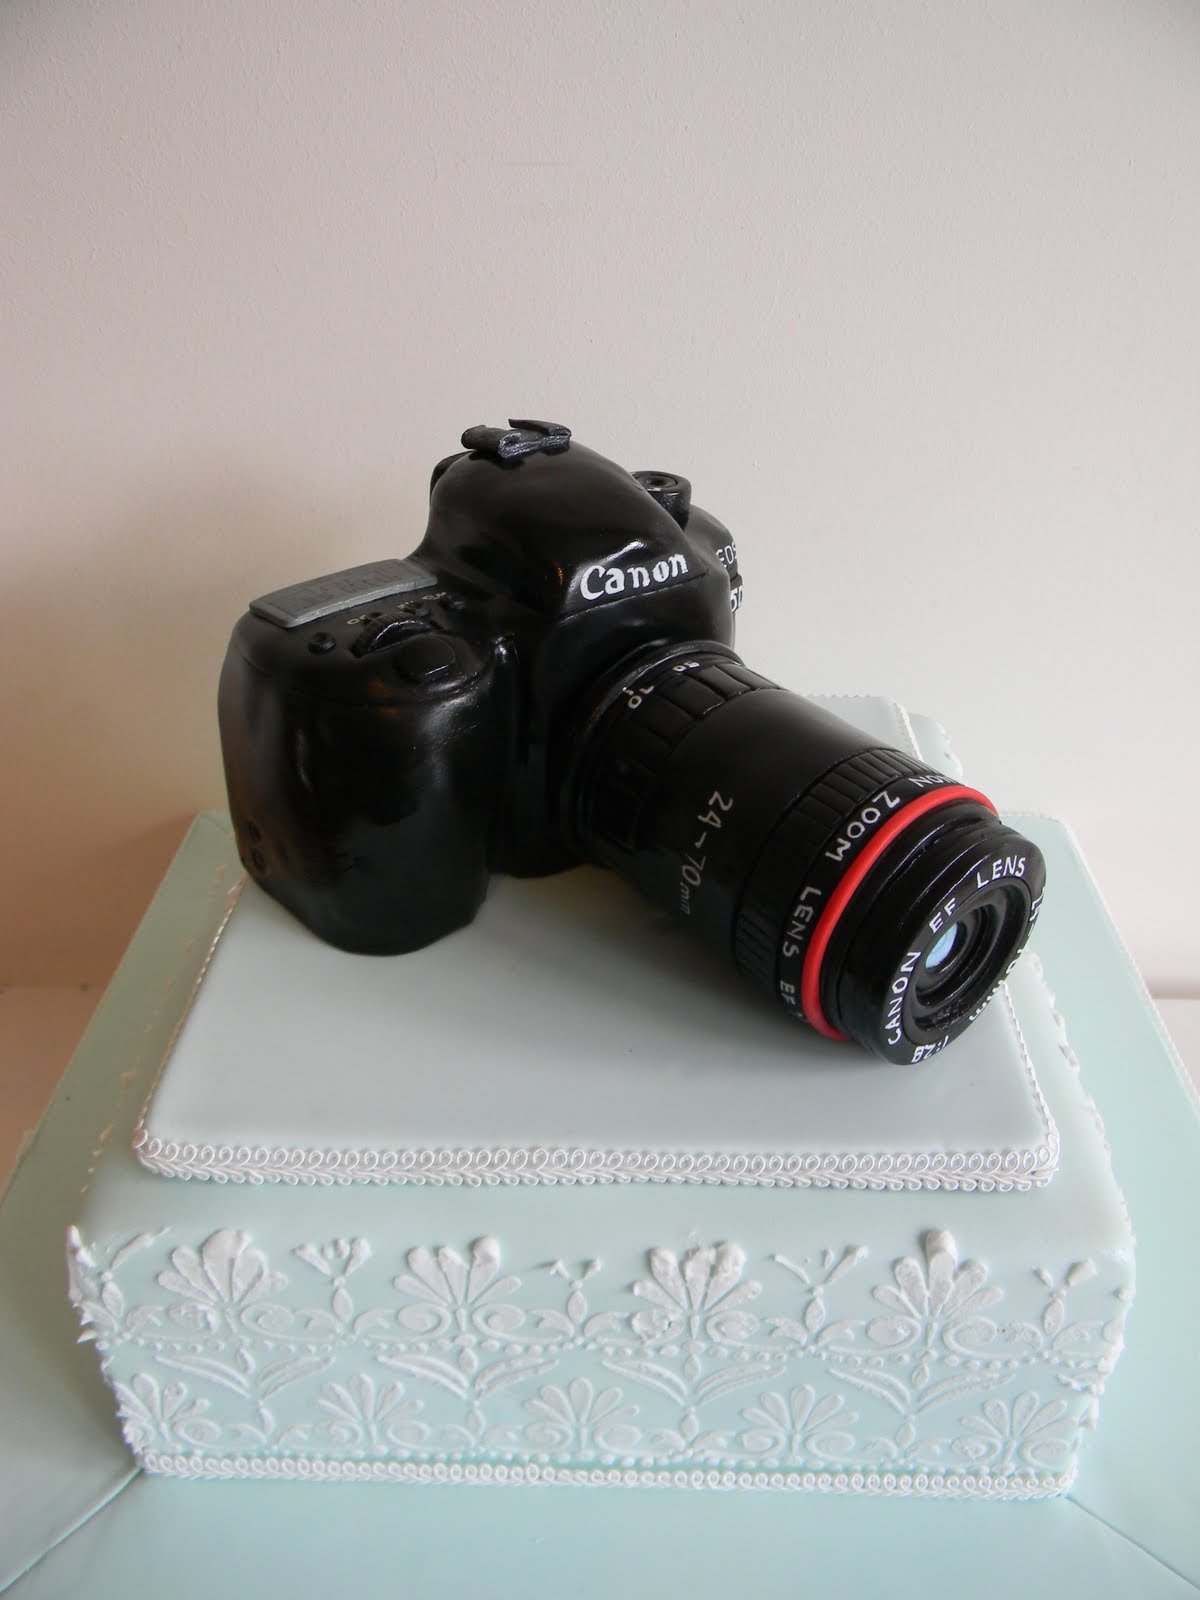 Camera Images For Cake : Coolest Cupcakes: Handi s cake course and camera cake